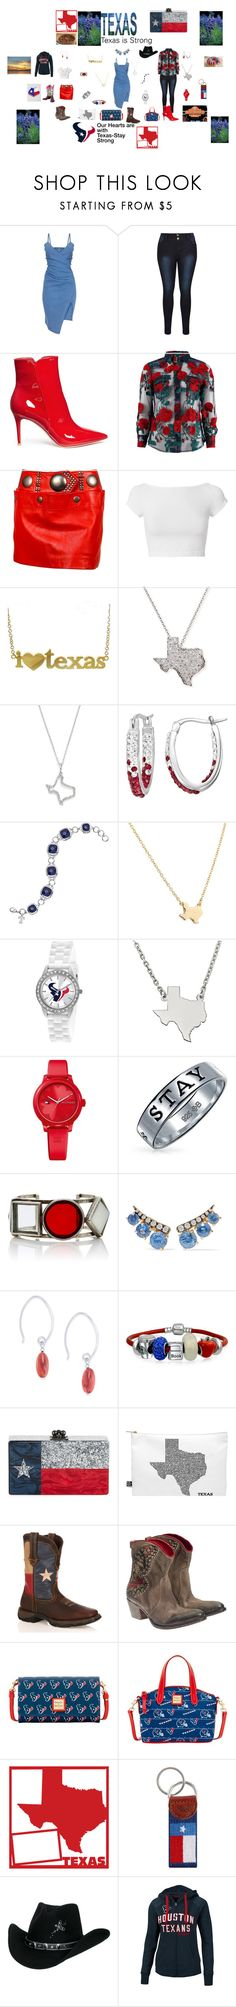 """""""Stay Strong Texas-Survivor's are always trendy!"""" by rebeccadavisblogger on Polyvore featuring Gianvito Rossi, Adam Selman, Issey Miyake, Helmut Lang, Jennifer Meyer Jewelry, Roberto Coin, KC Designs, LogoArt, Game Time and Tommy Hilfiger"""